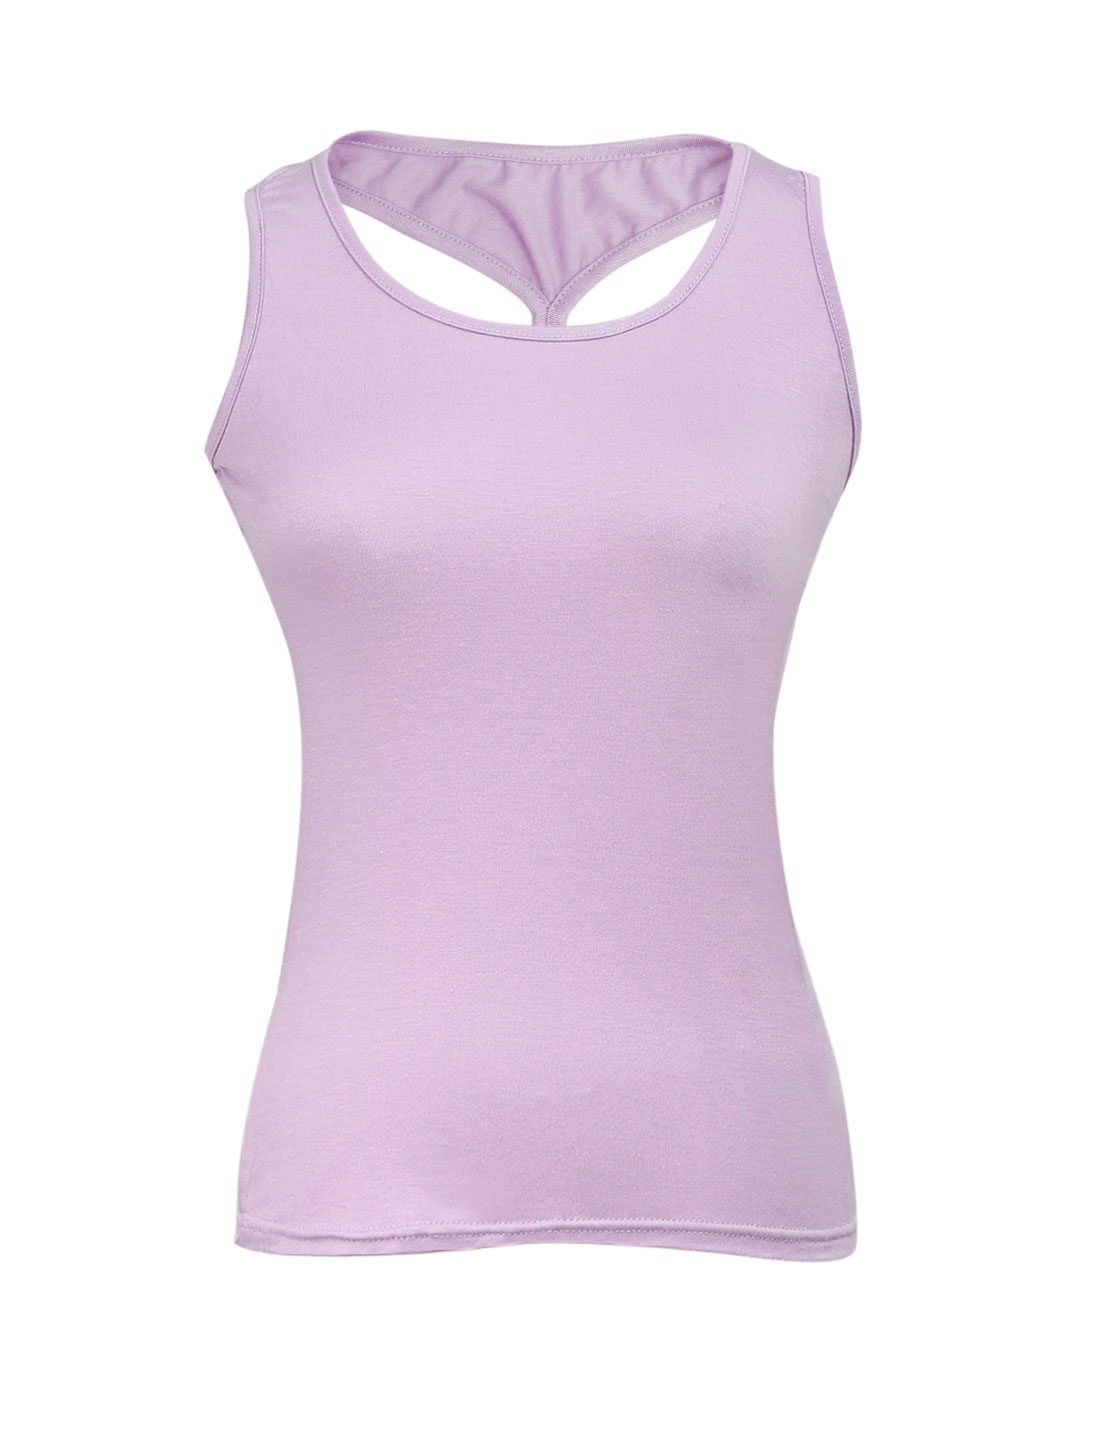 Ladies U Neck Cross Back Elastic Pure Pattern Tank Top Lavender XS